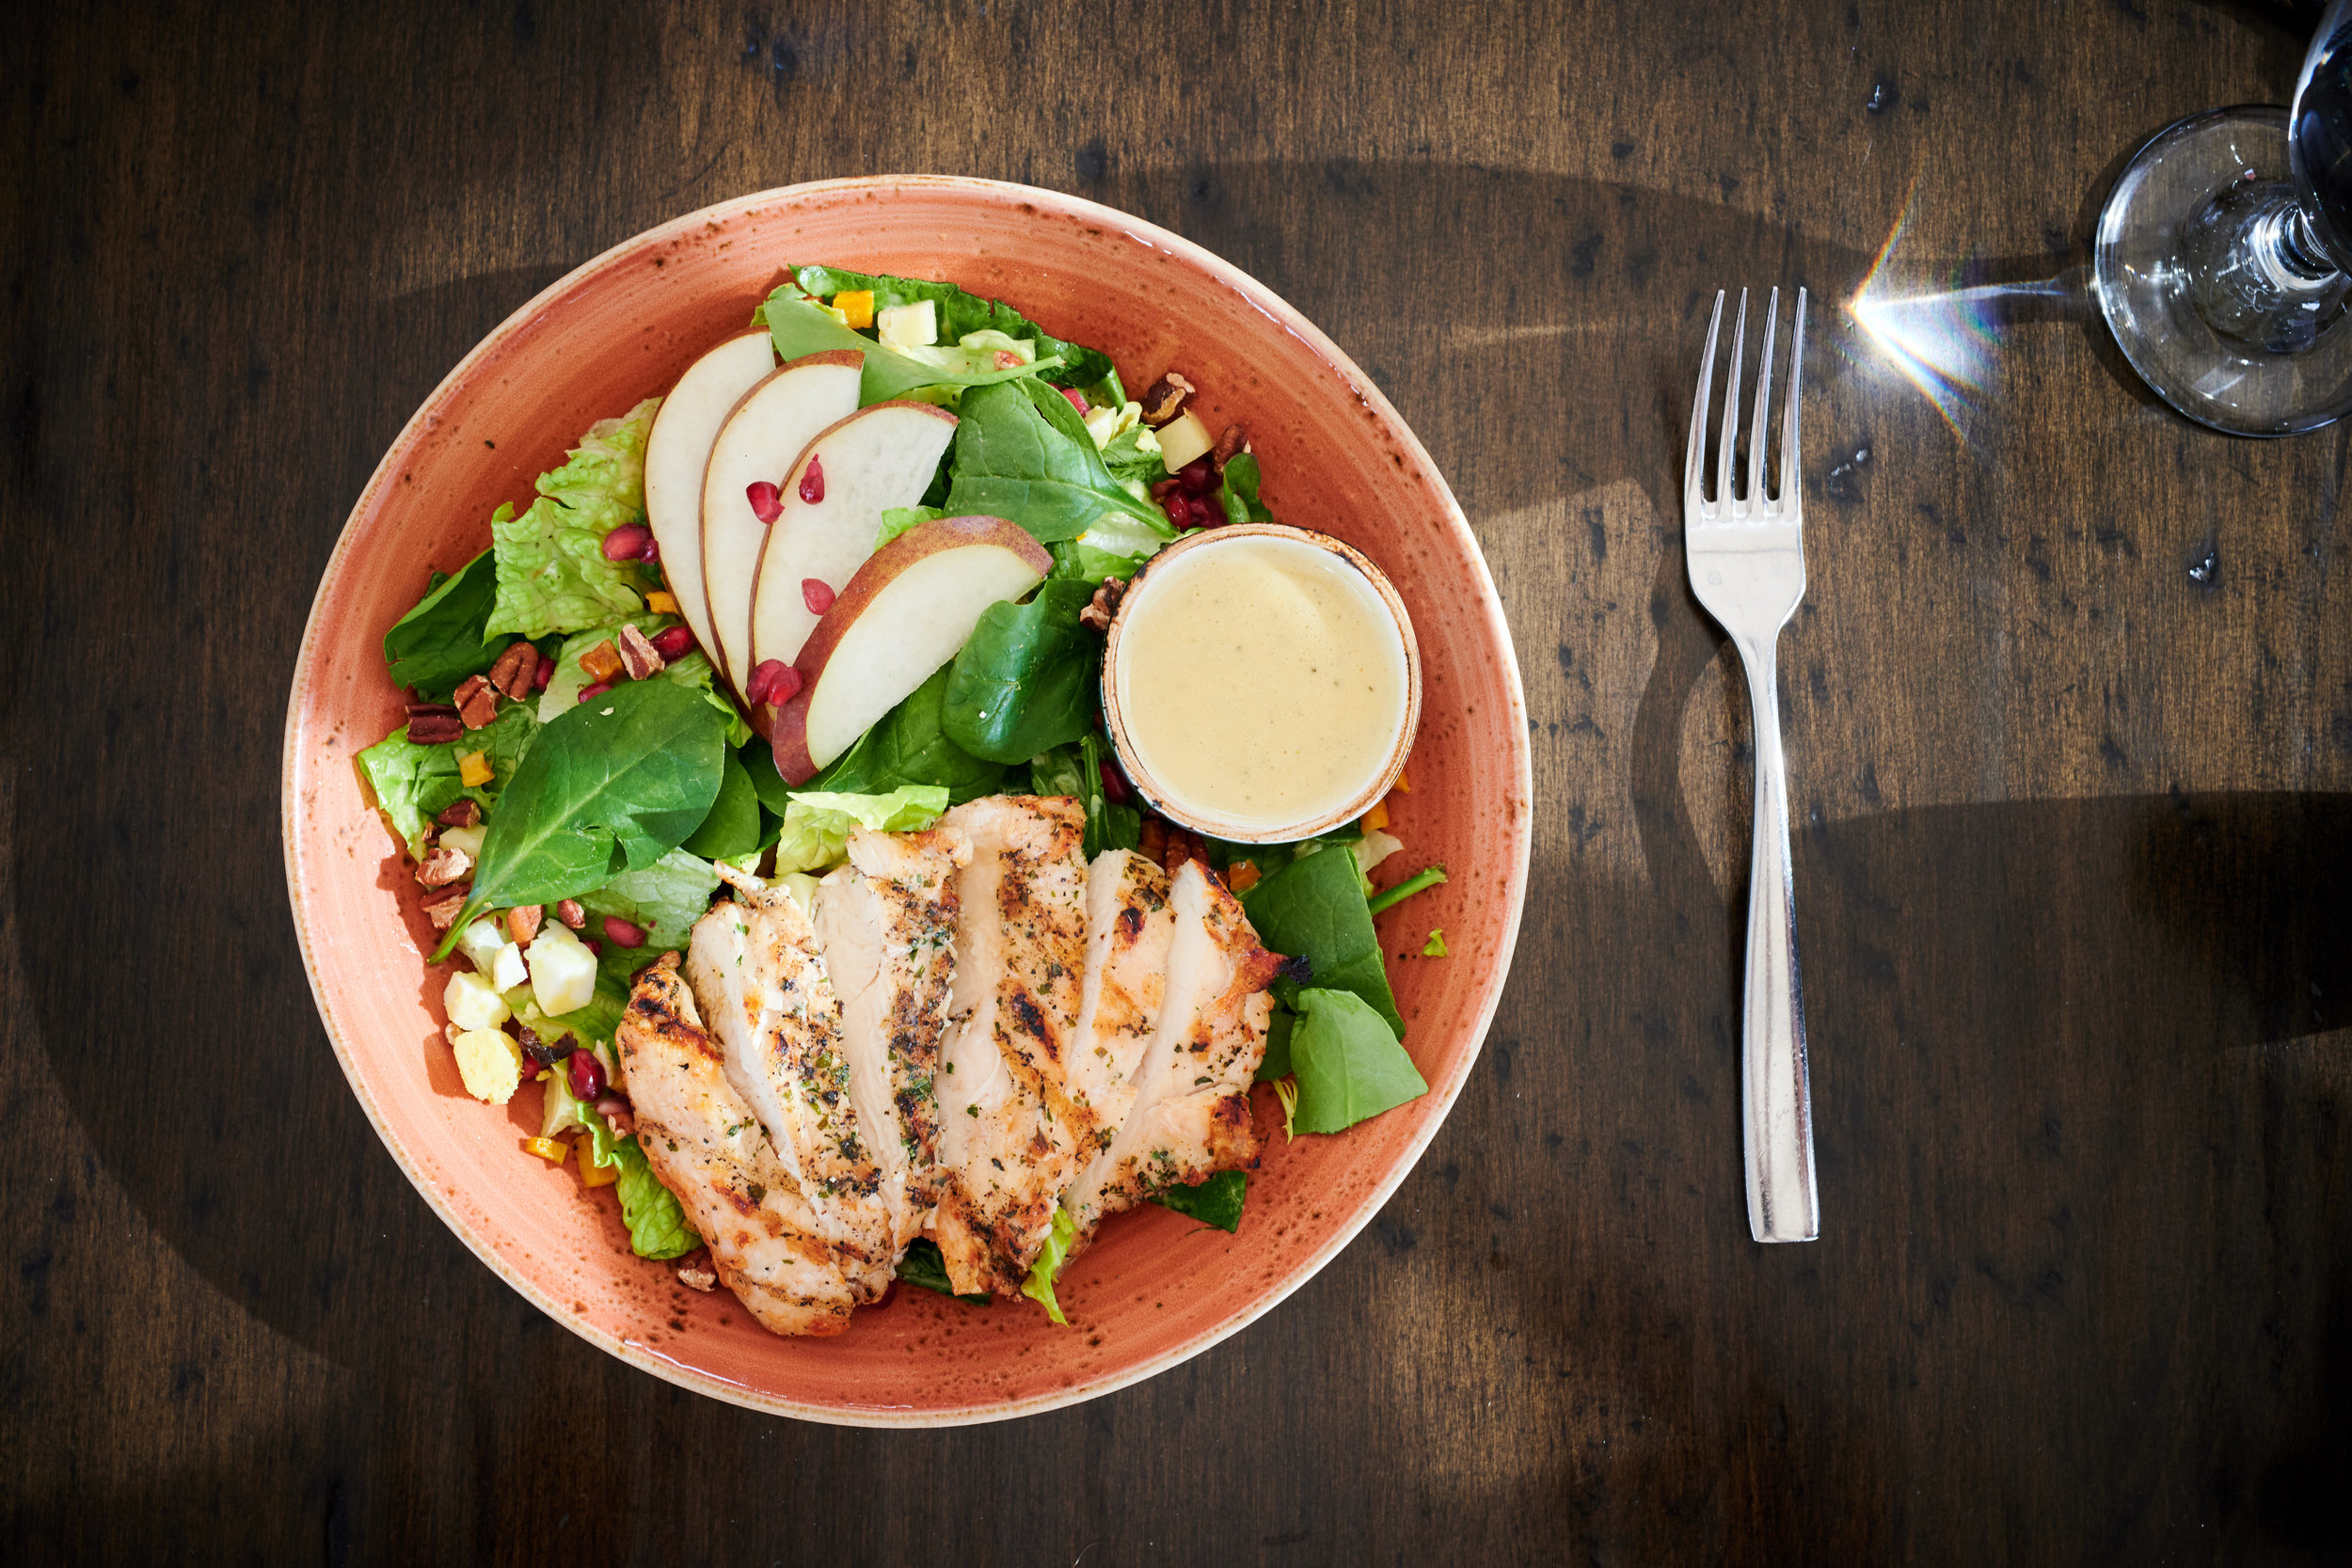 Harvest Cobb Salad with Grilled Chicken, Romaine, Mixed Greens, Grilled Pears, Bacon, Egg, Smoked Cheddar, Pomegranate, Butternut Squash, Pecans, Apple Cider Vinaigrette